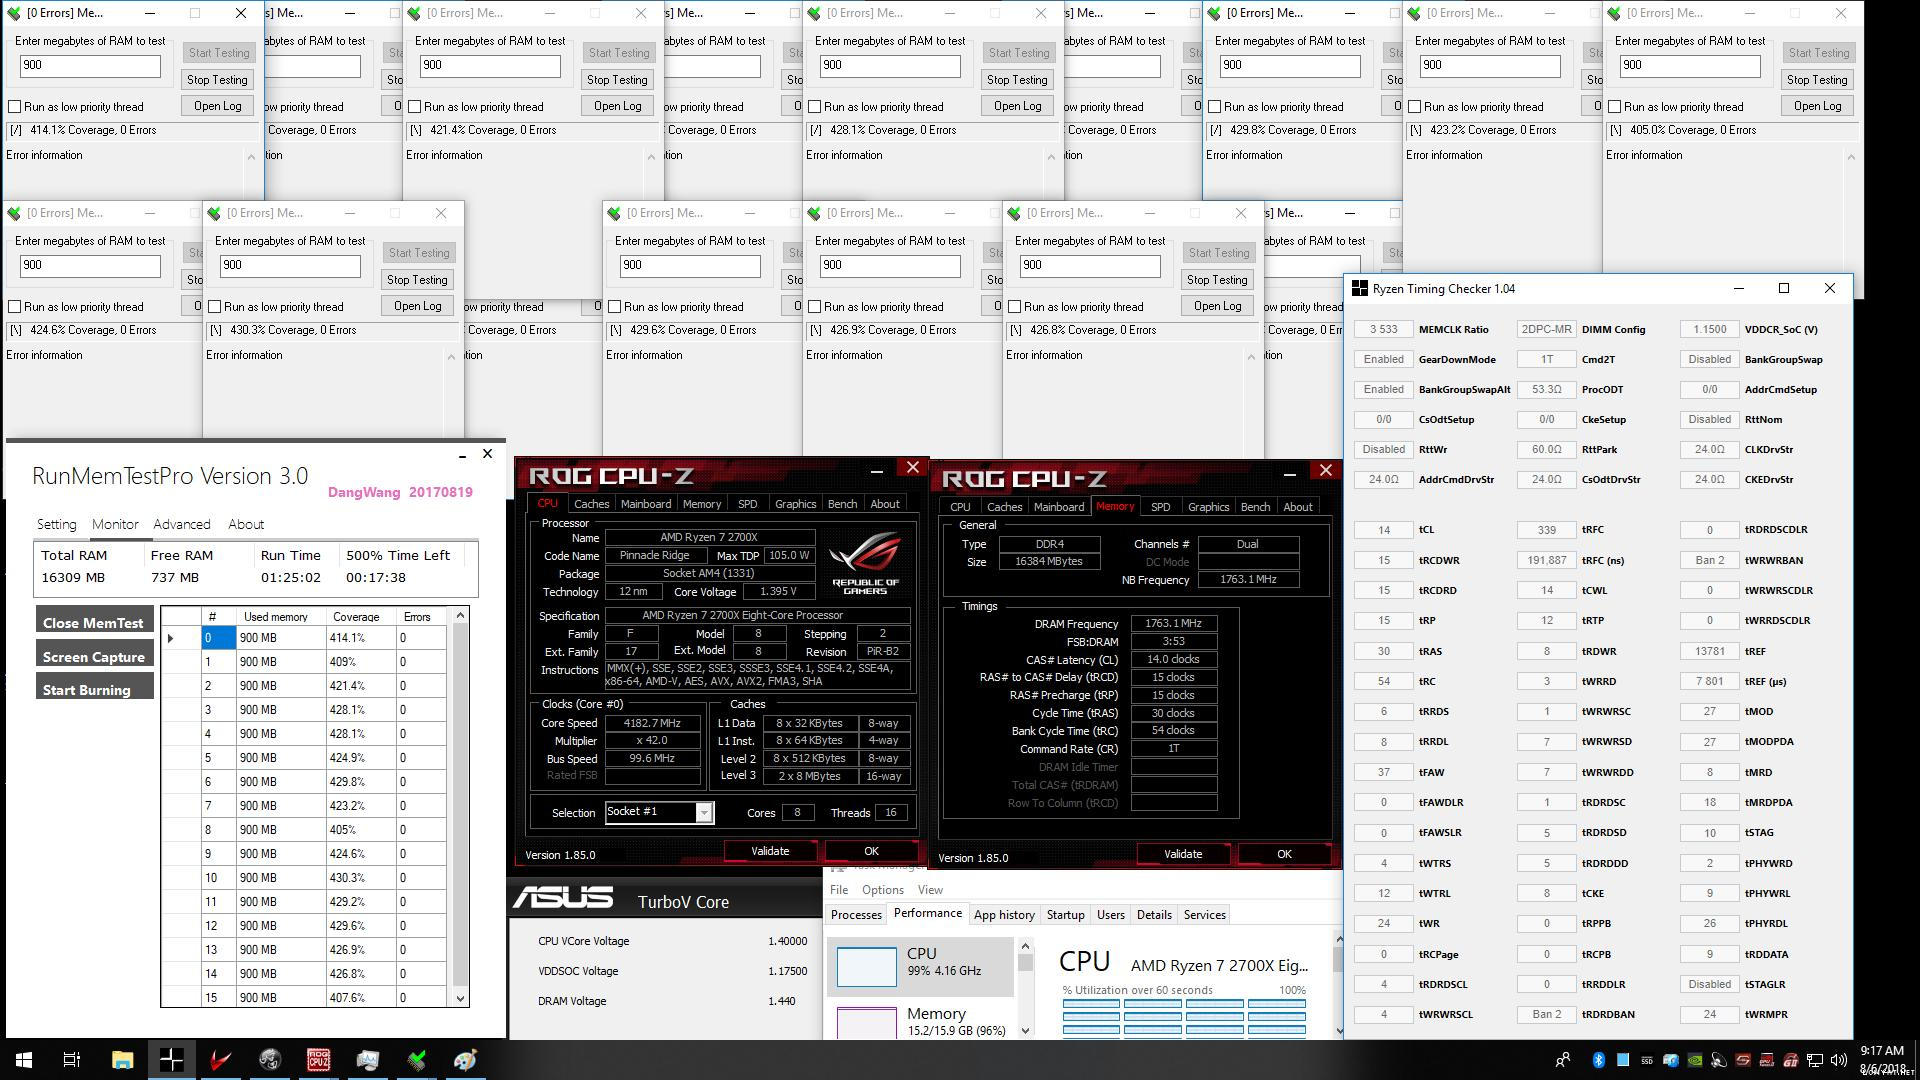 Official] AMD Ryzen DDR4 24/7 Memory Stability Thread - Page 223